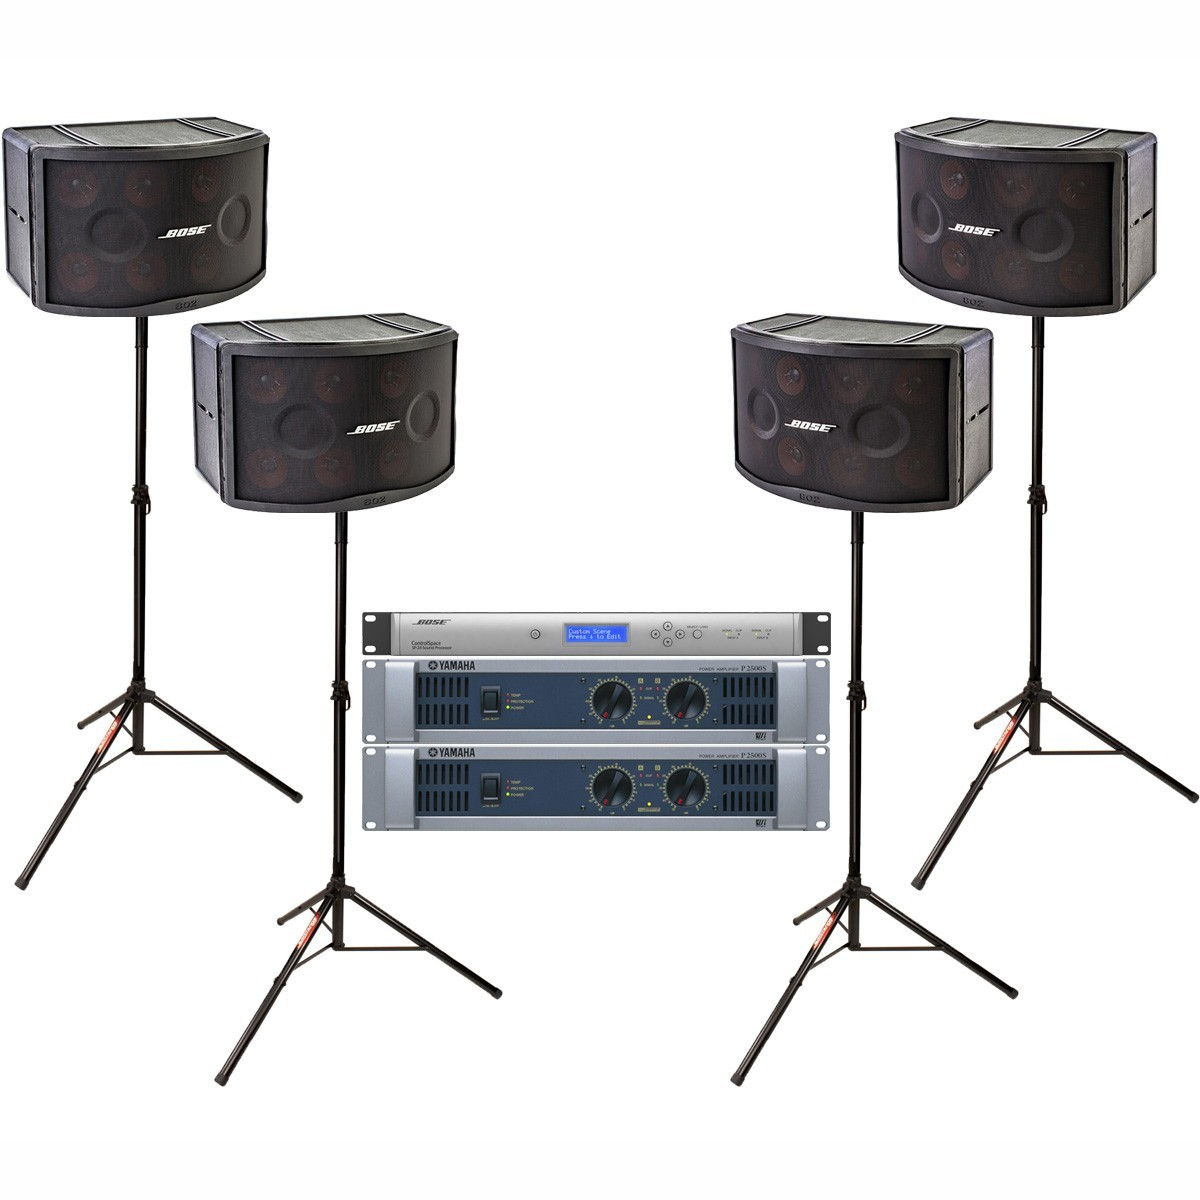 bose band sound system with 4 panaray 802 series iii loudspeakers and yamaha p2500s power amplifier. Black Bedroom Furniture Sets. Home Design Ideas